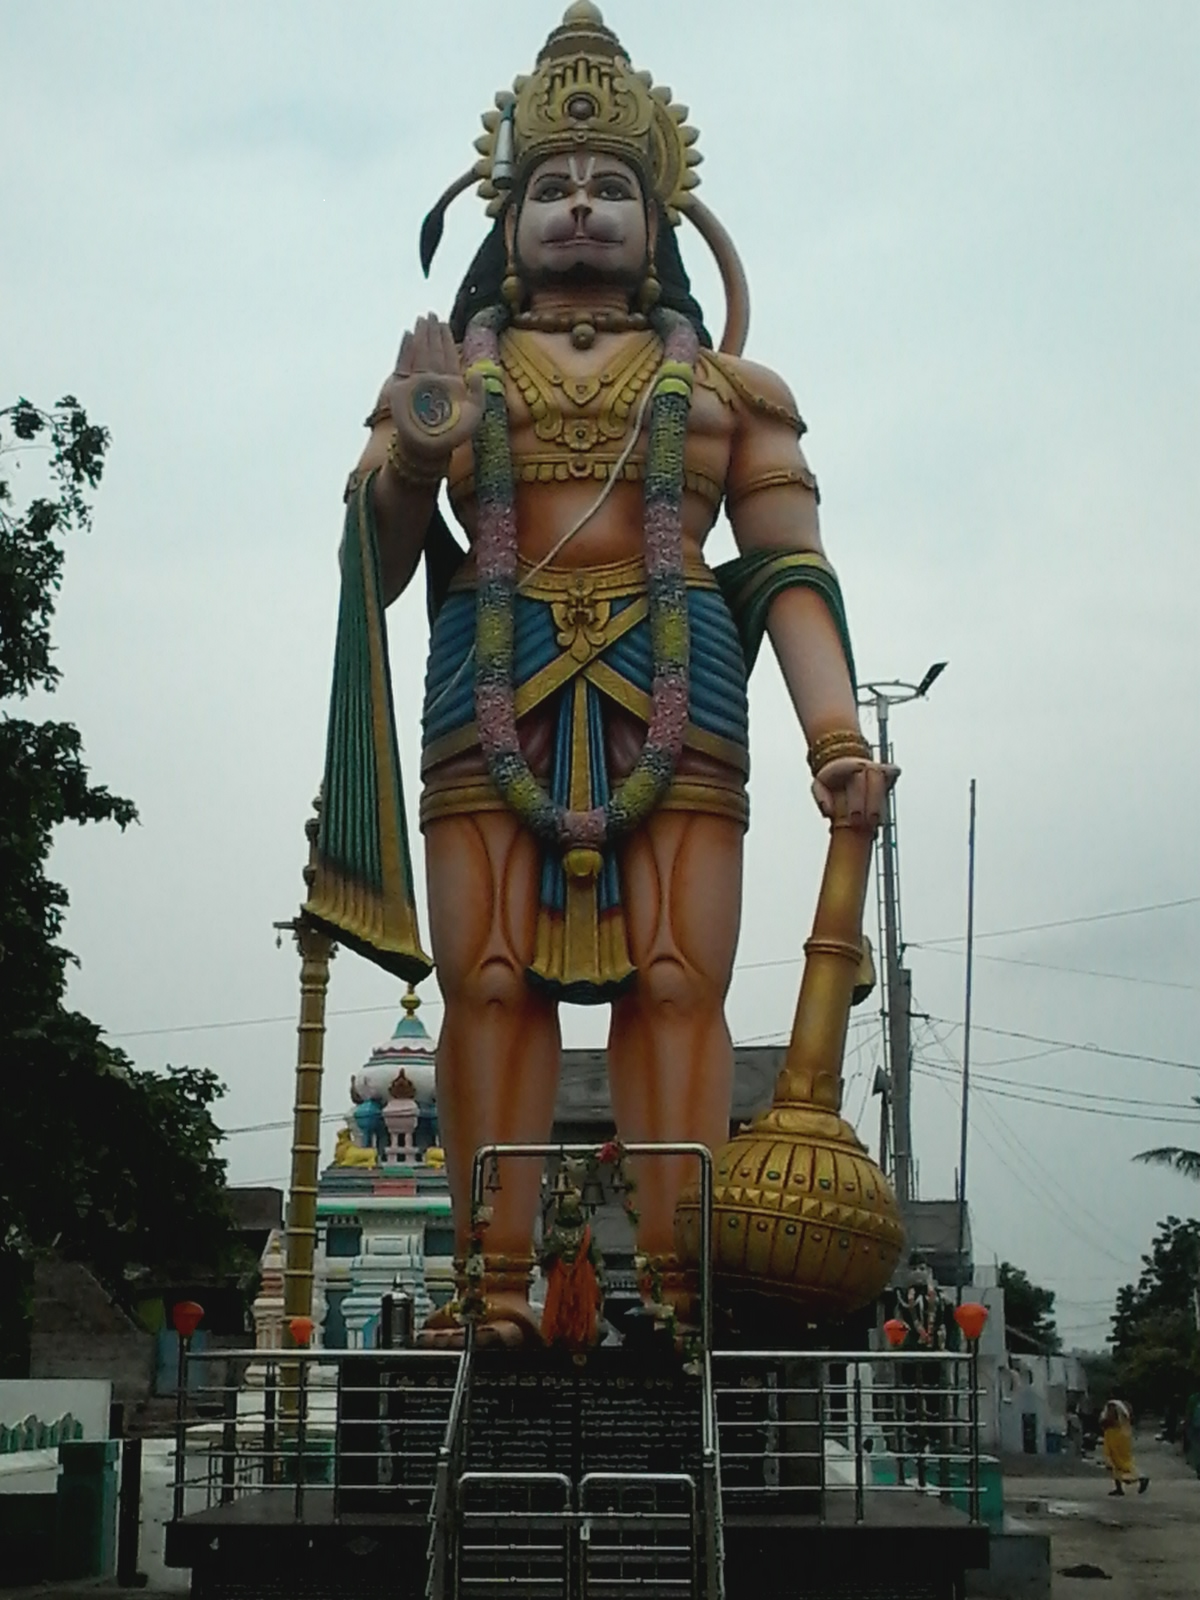 Sri Anjaneya Swamy - Statue of Lord Hanuman, Chandaluru village of Prakasam District, Andhra Pradesh